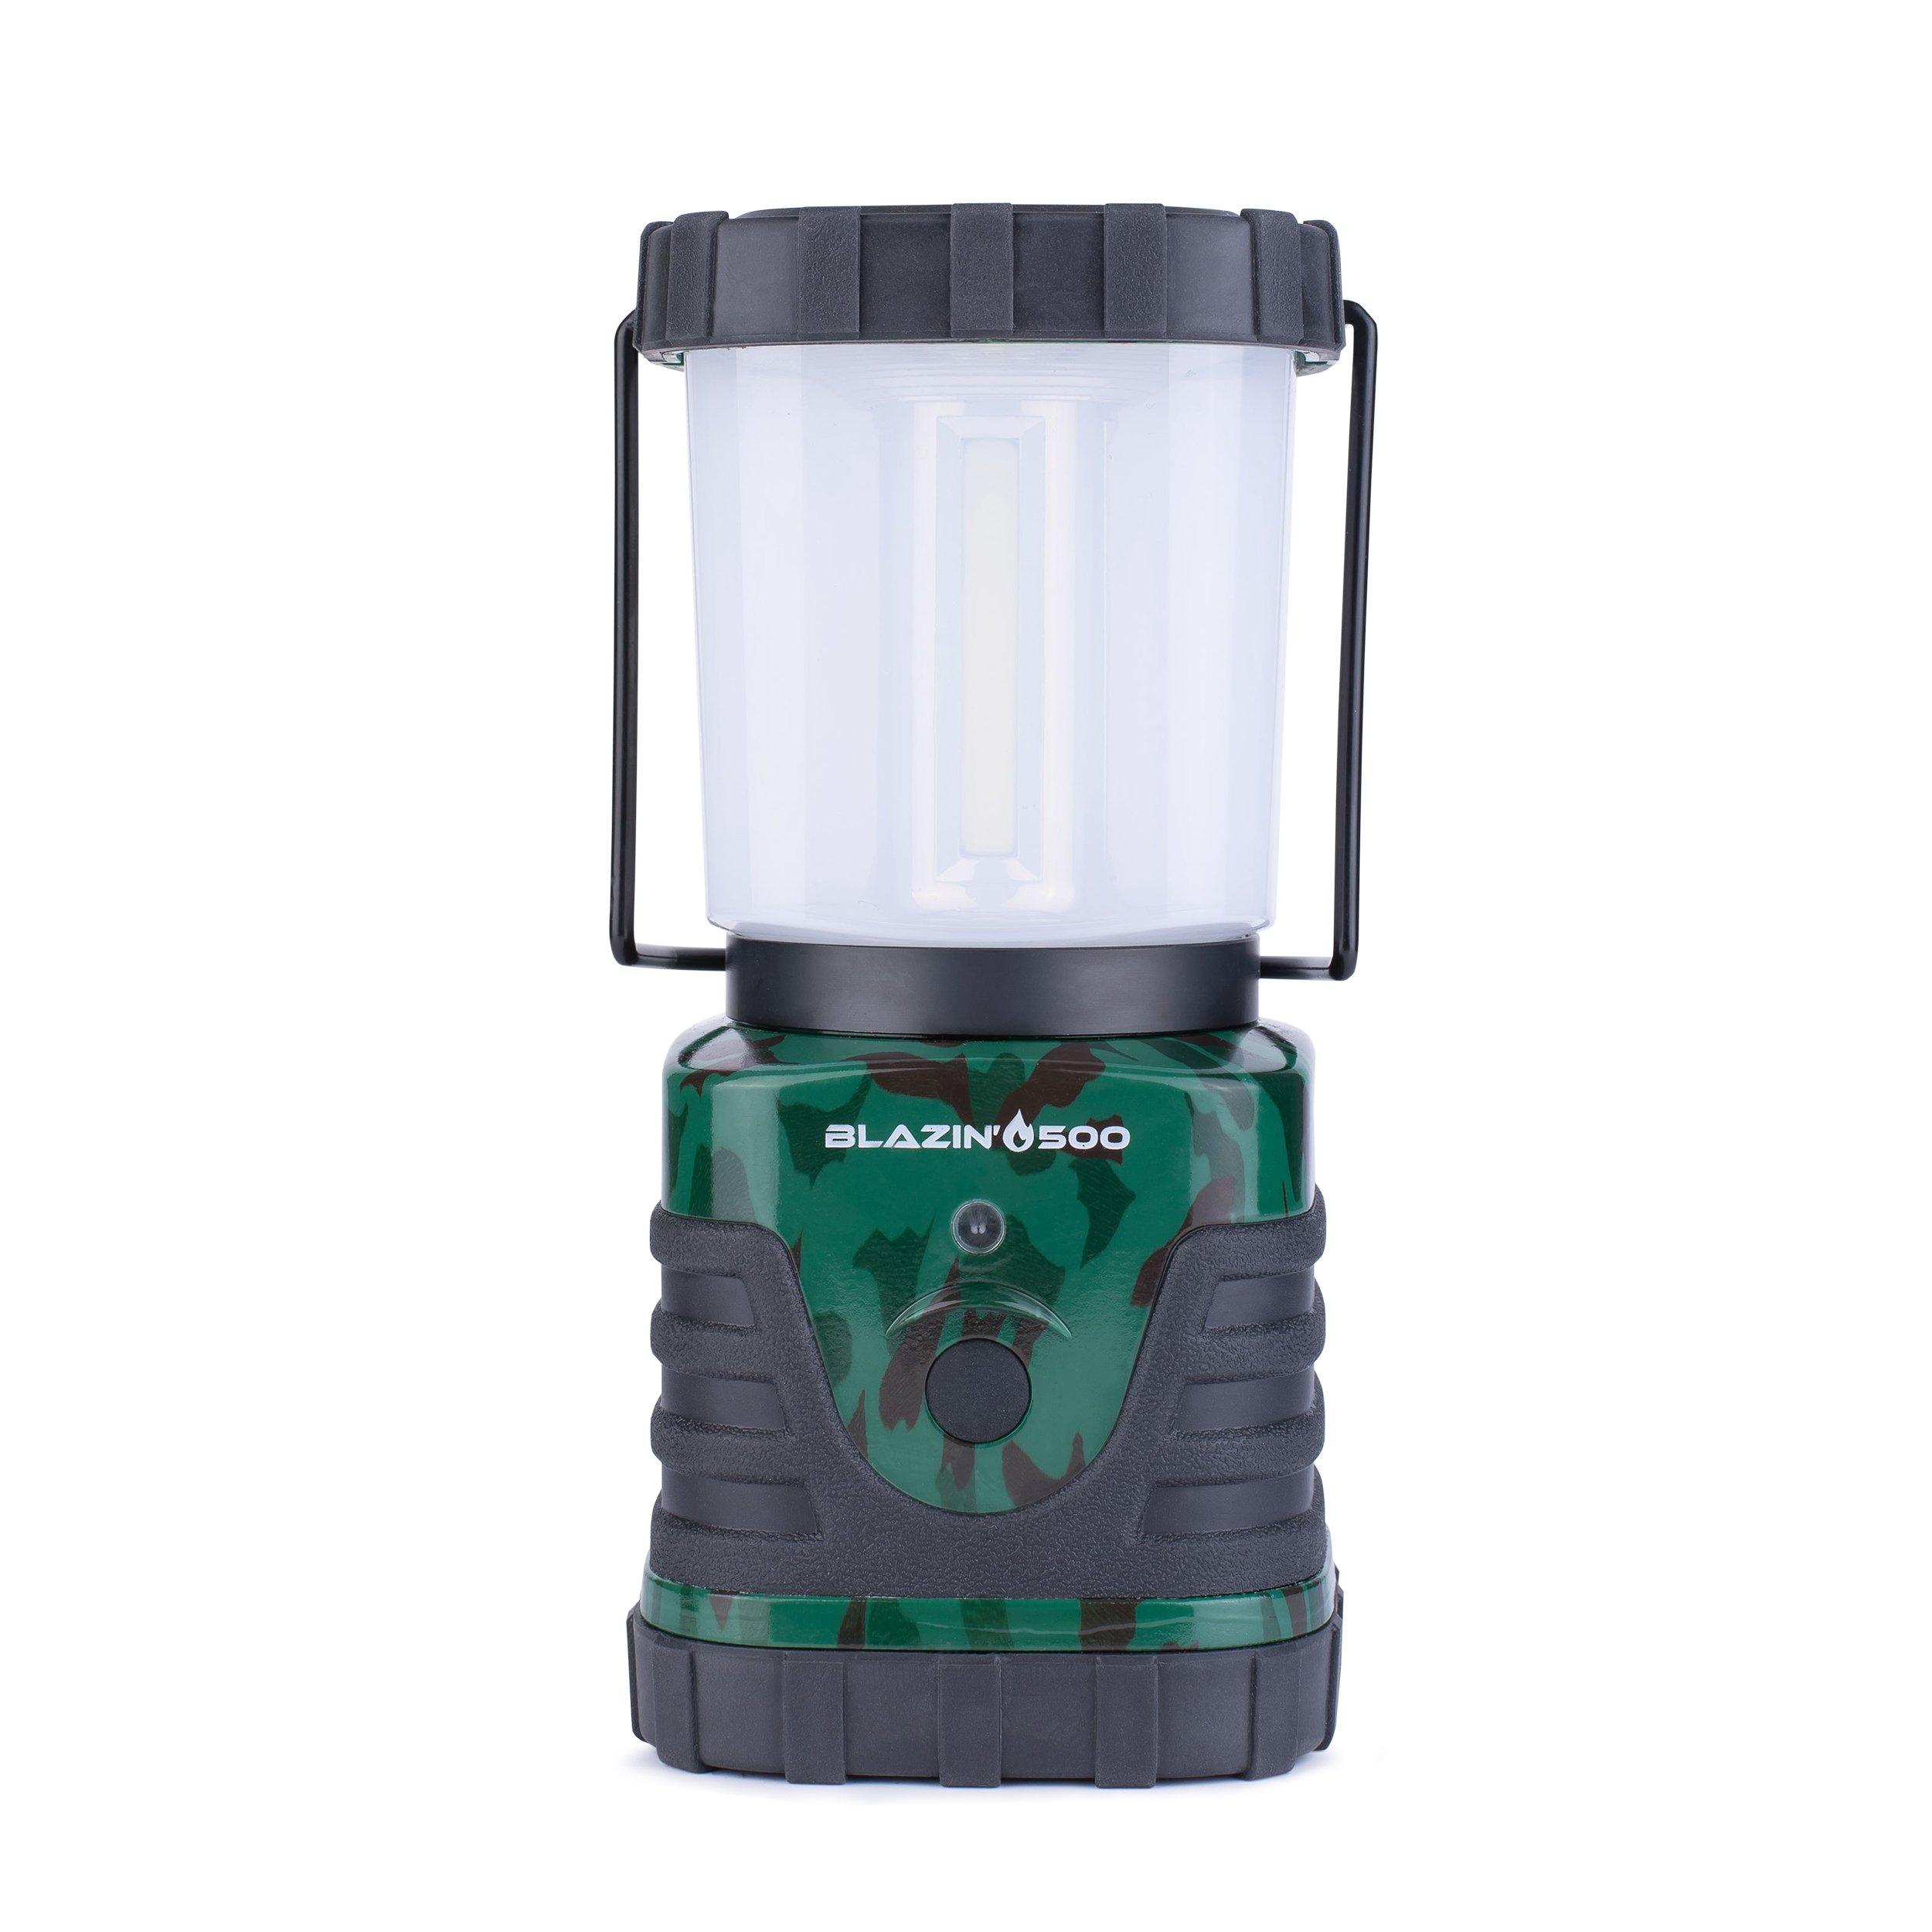 Brightest LED Storm & Power Outage Lantern - Battery Powered - 500 Lumen - 6 Day Run Time by Blazin' Bison